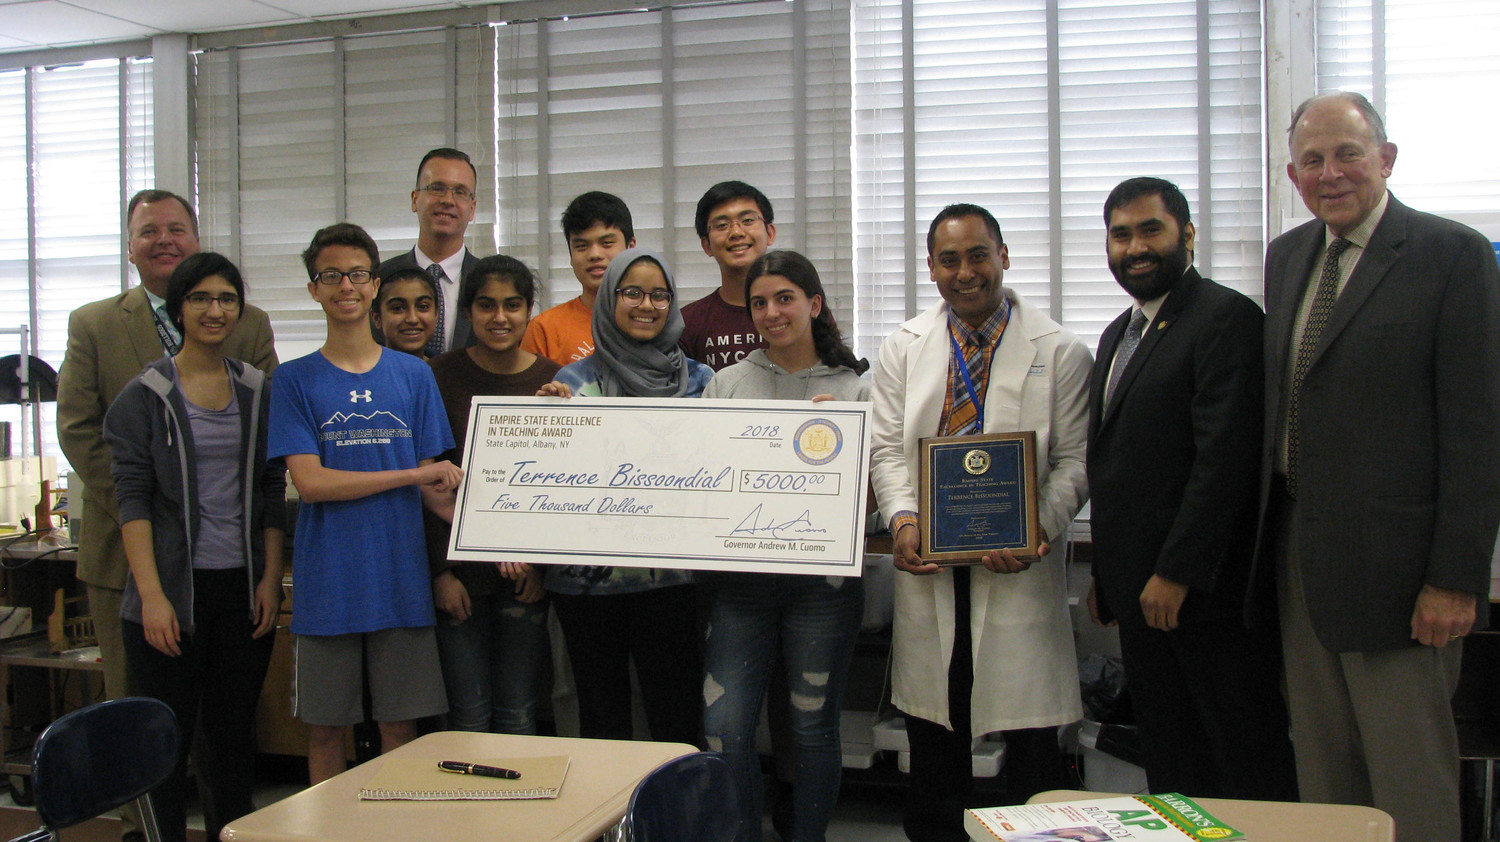 Dr. Terrence Bissondial, the Hewlett High School science teacher who manages the district's science research program, was presented with an Empire State Excellence in Teaching Award. From left were Superintendent Dr. Ralph Marino Jr., Maya Tariq, David Durdaller, Pashma Sadiq, Science Chairman Dr. Brian Terry, Shanzeh Sadiq, Asma Rasheed, Lauren Ledon, Alex Tang, Randel Placino, Bissondial, Governor's Nassau County representative Imran Ansari, and interim high school Principal Jack Lenson.